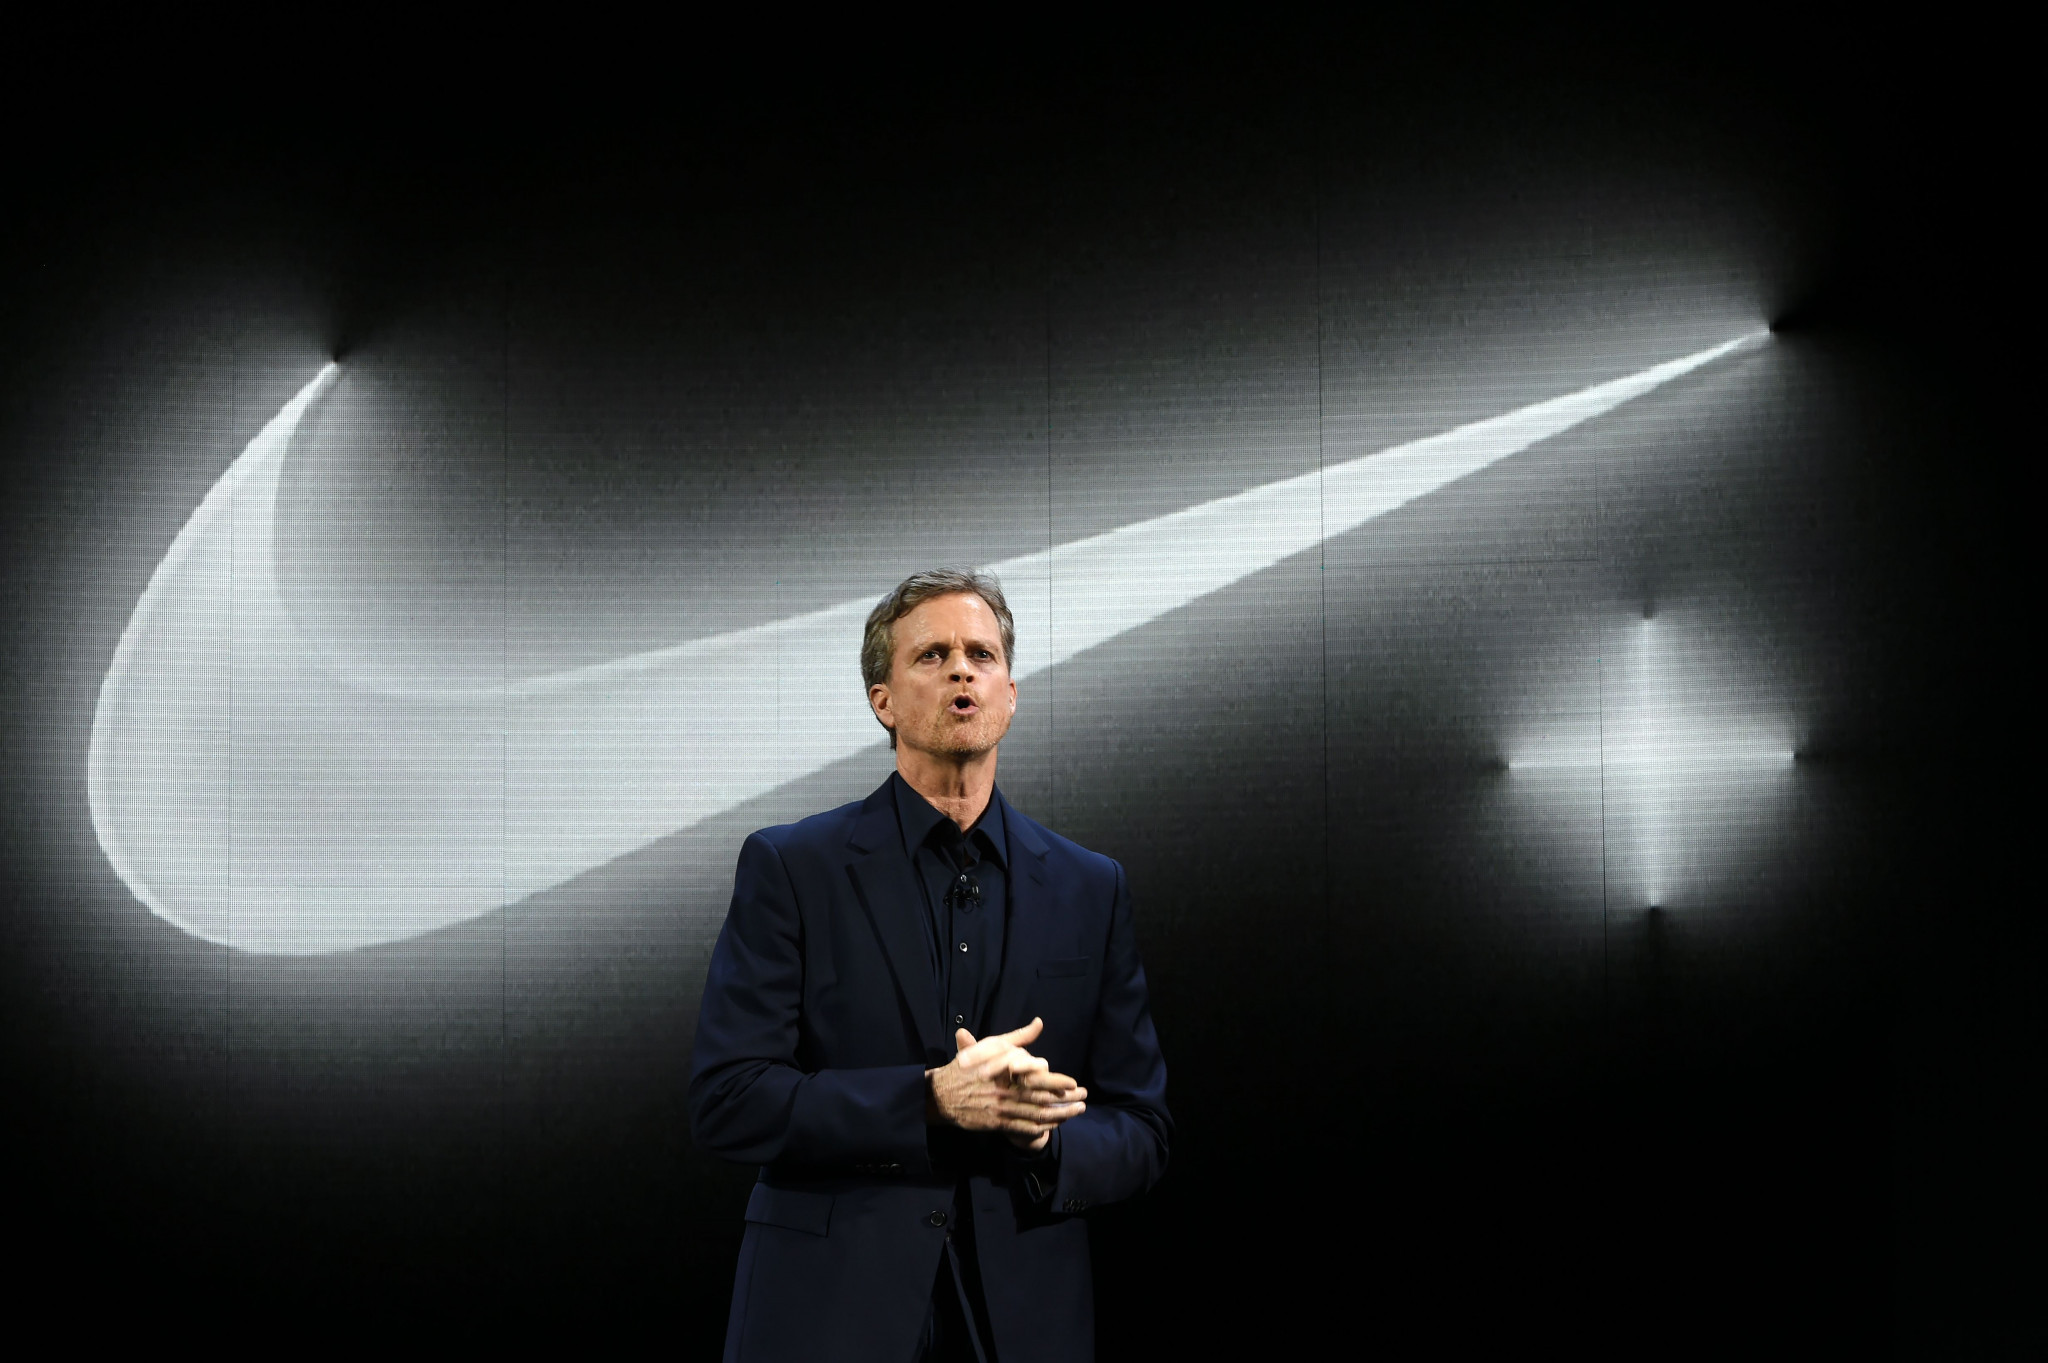 Nike chief executive to step down after Salazar doping scandal